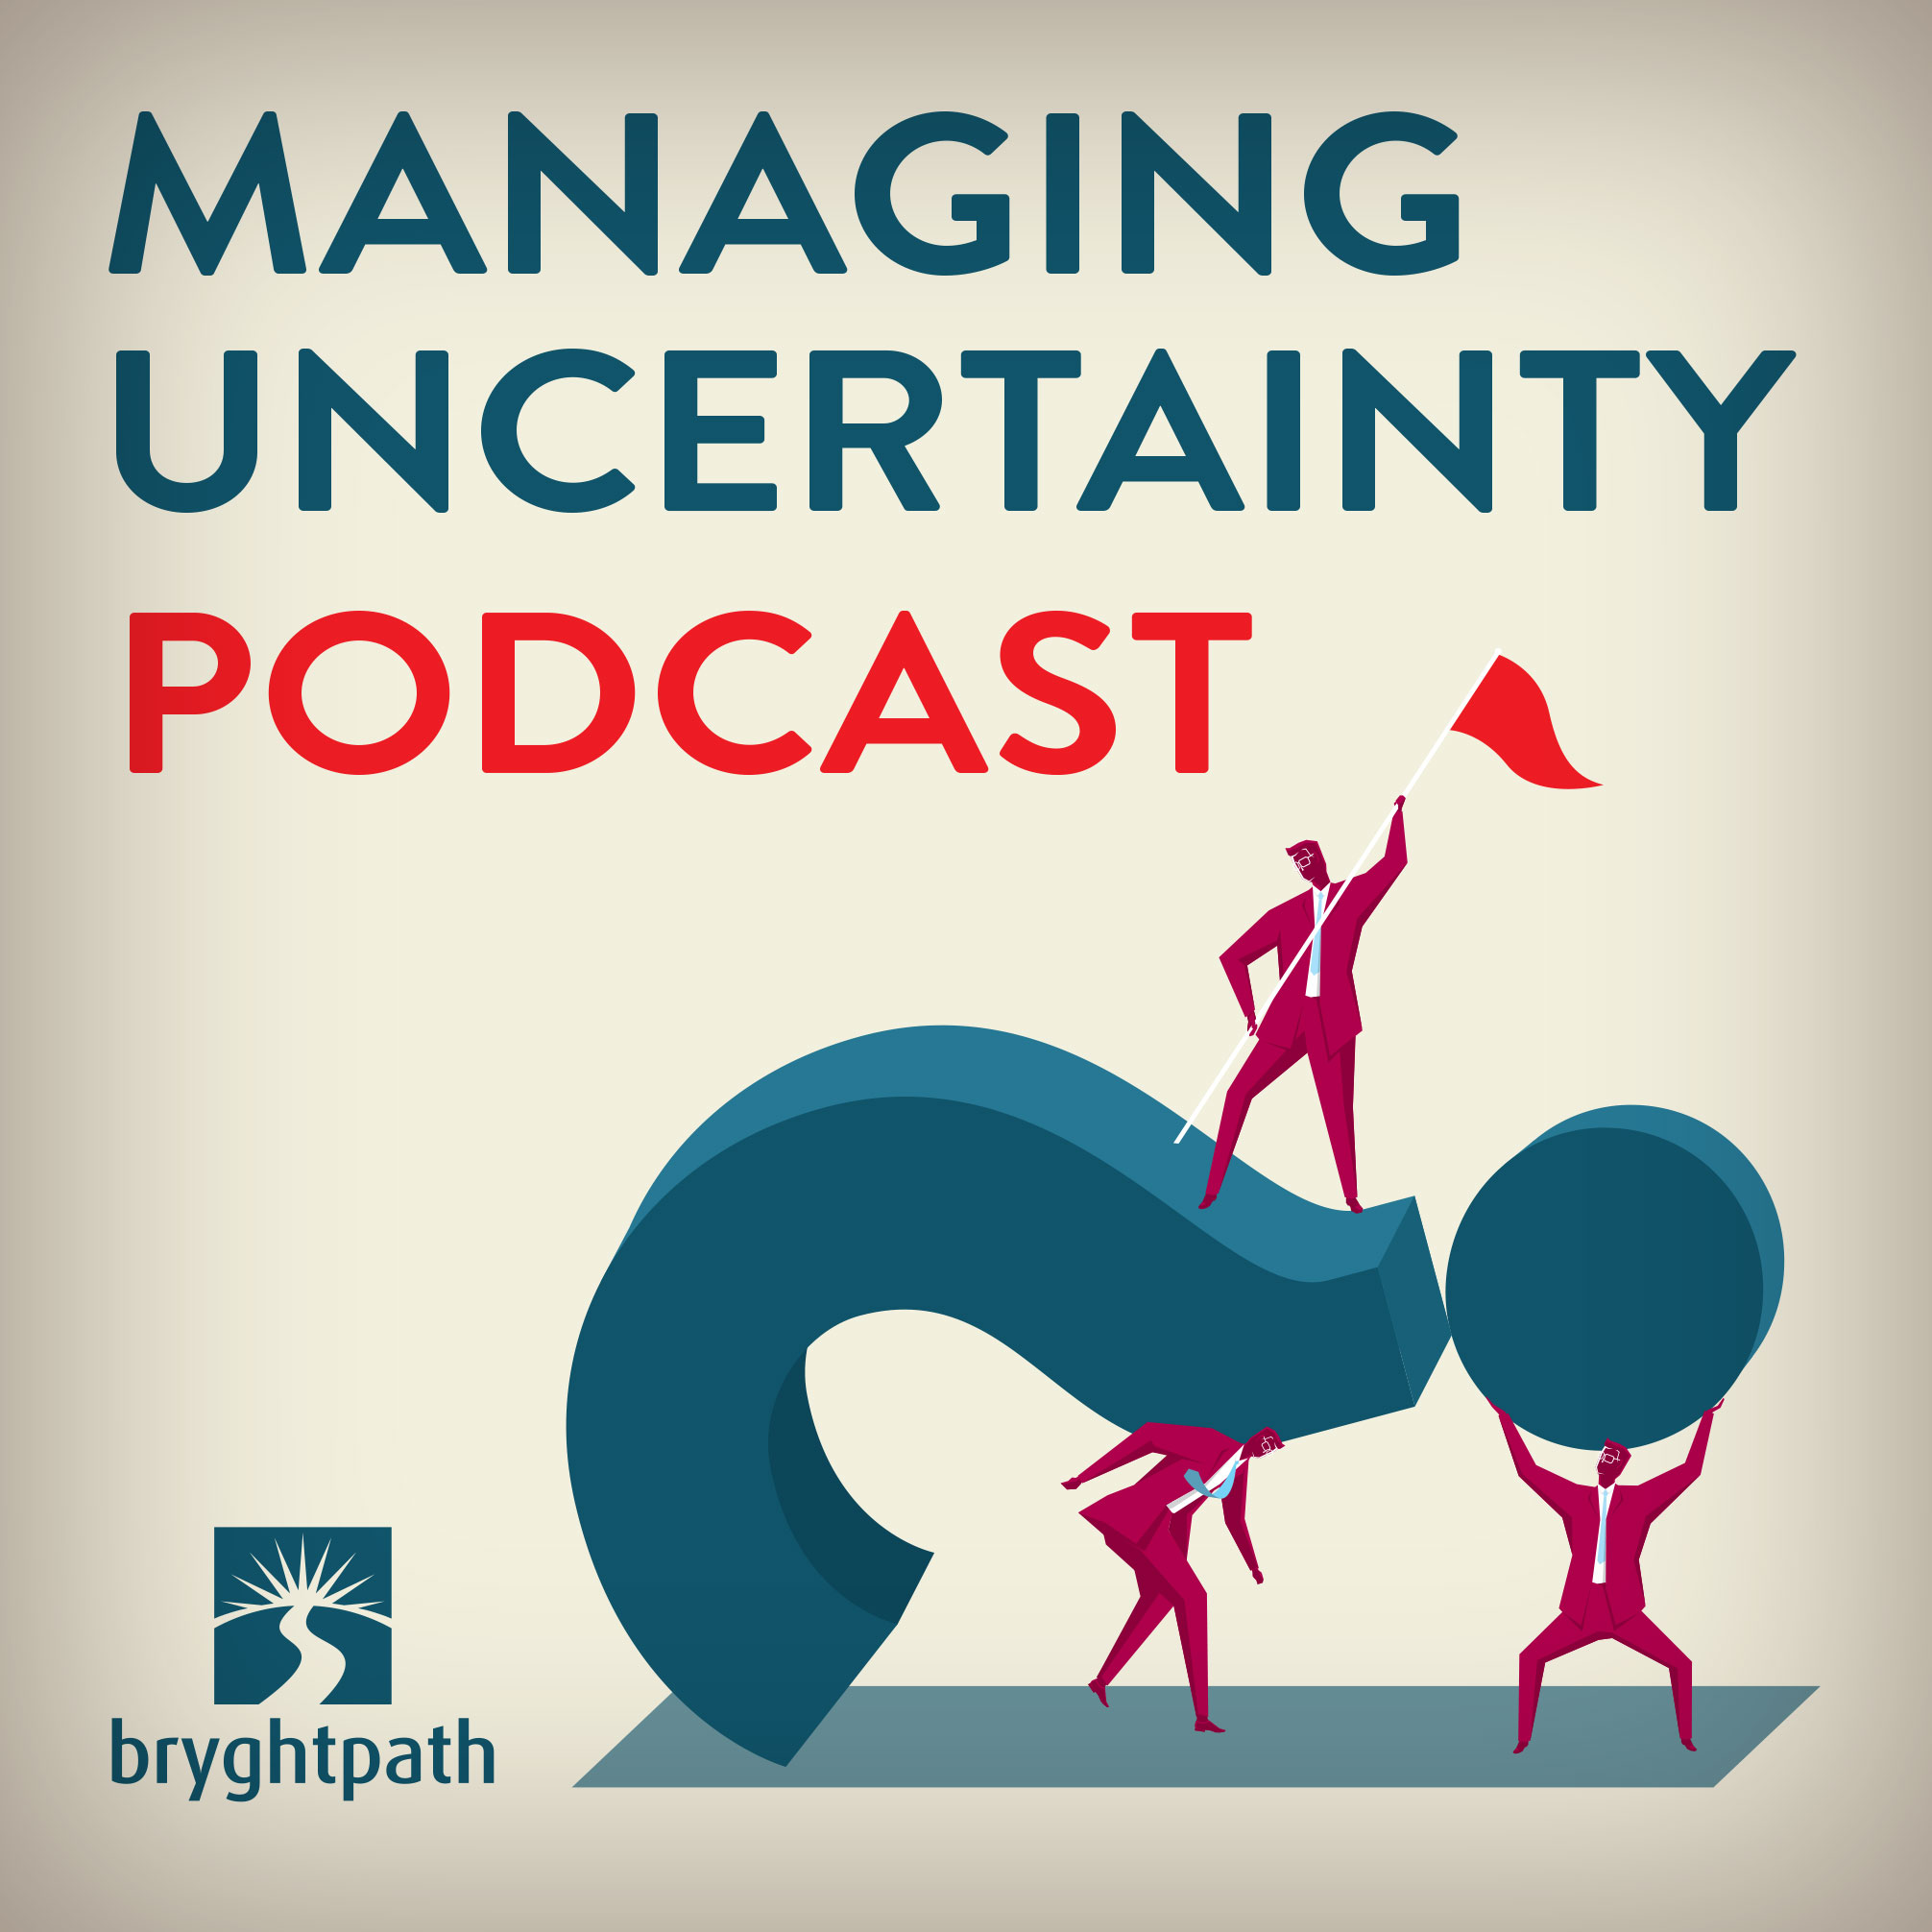 Managing-Uncertainty-Podcast-Logo Managing Uncertainty Podcast - Episode #83: The Secret Service Report on Targeted School Violence